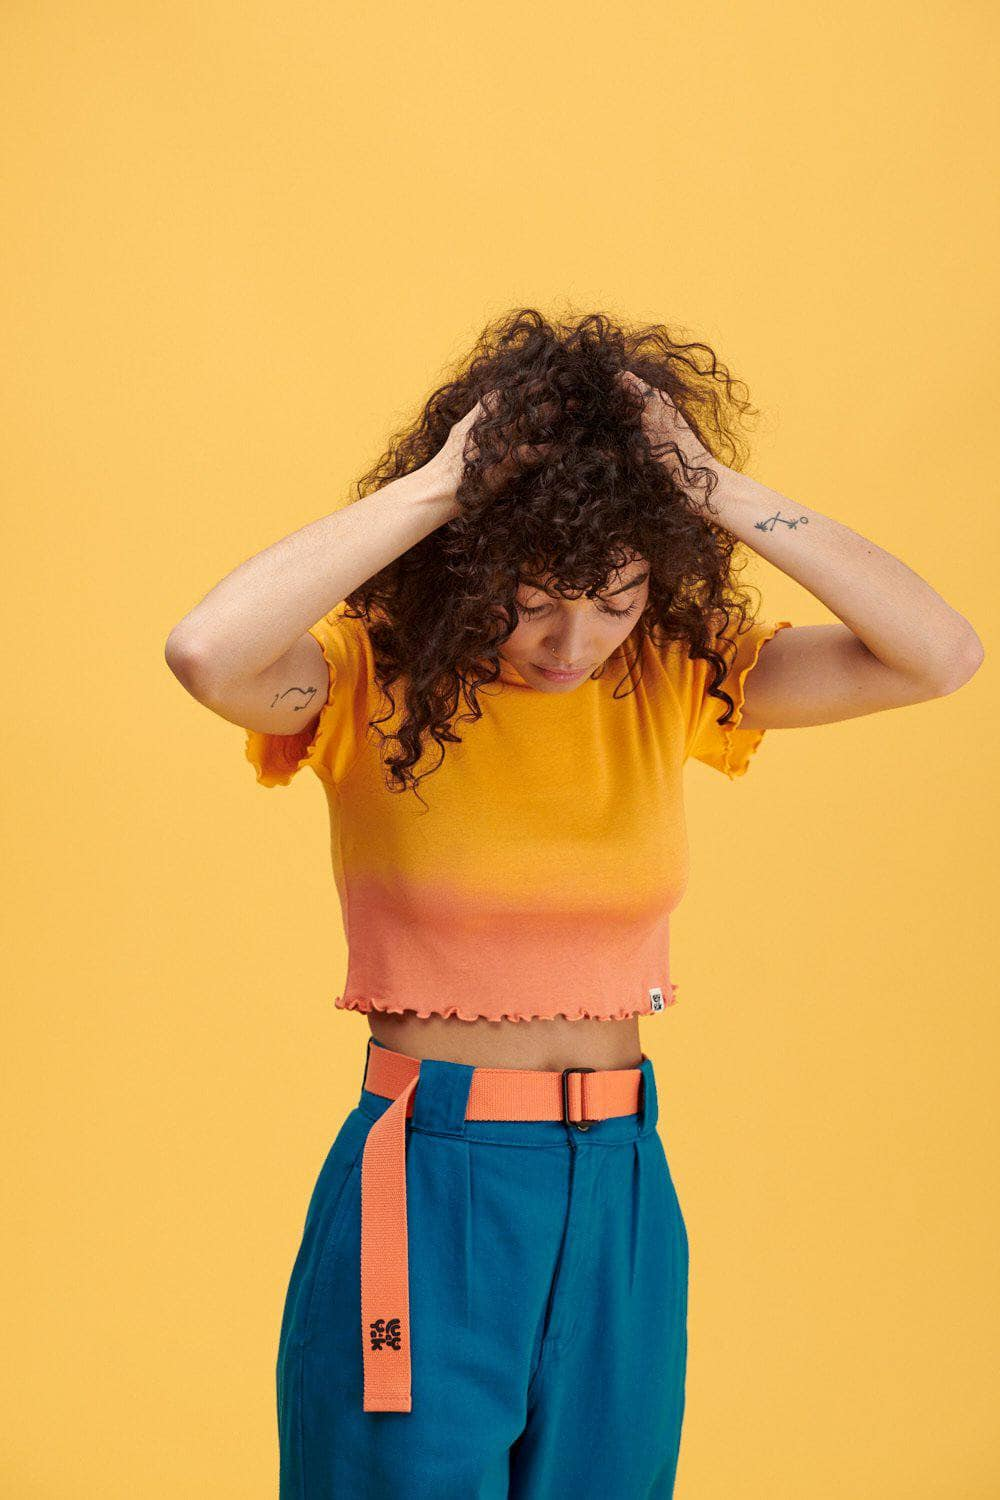 Lucy & Yak Tops Greta Cropped Lettuce Edge Tee in Artisans Gold & Melon Ombre